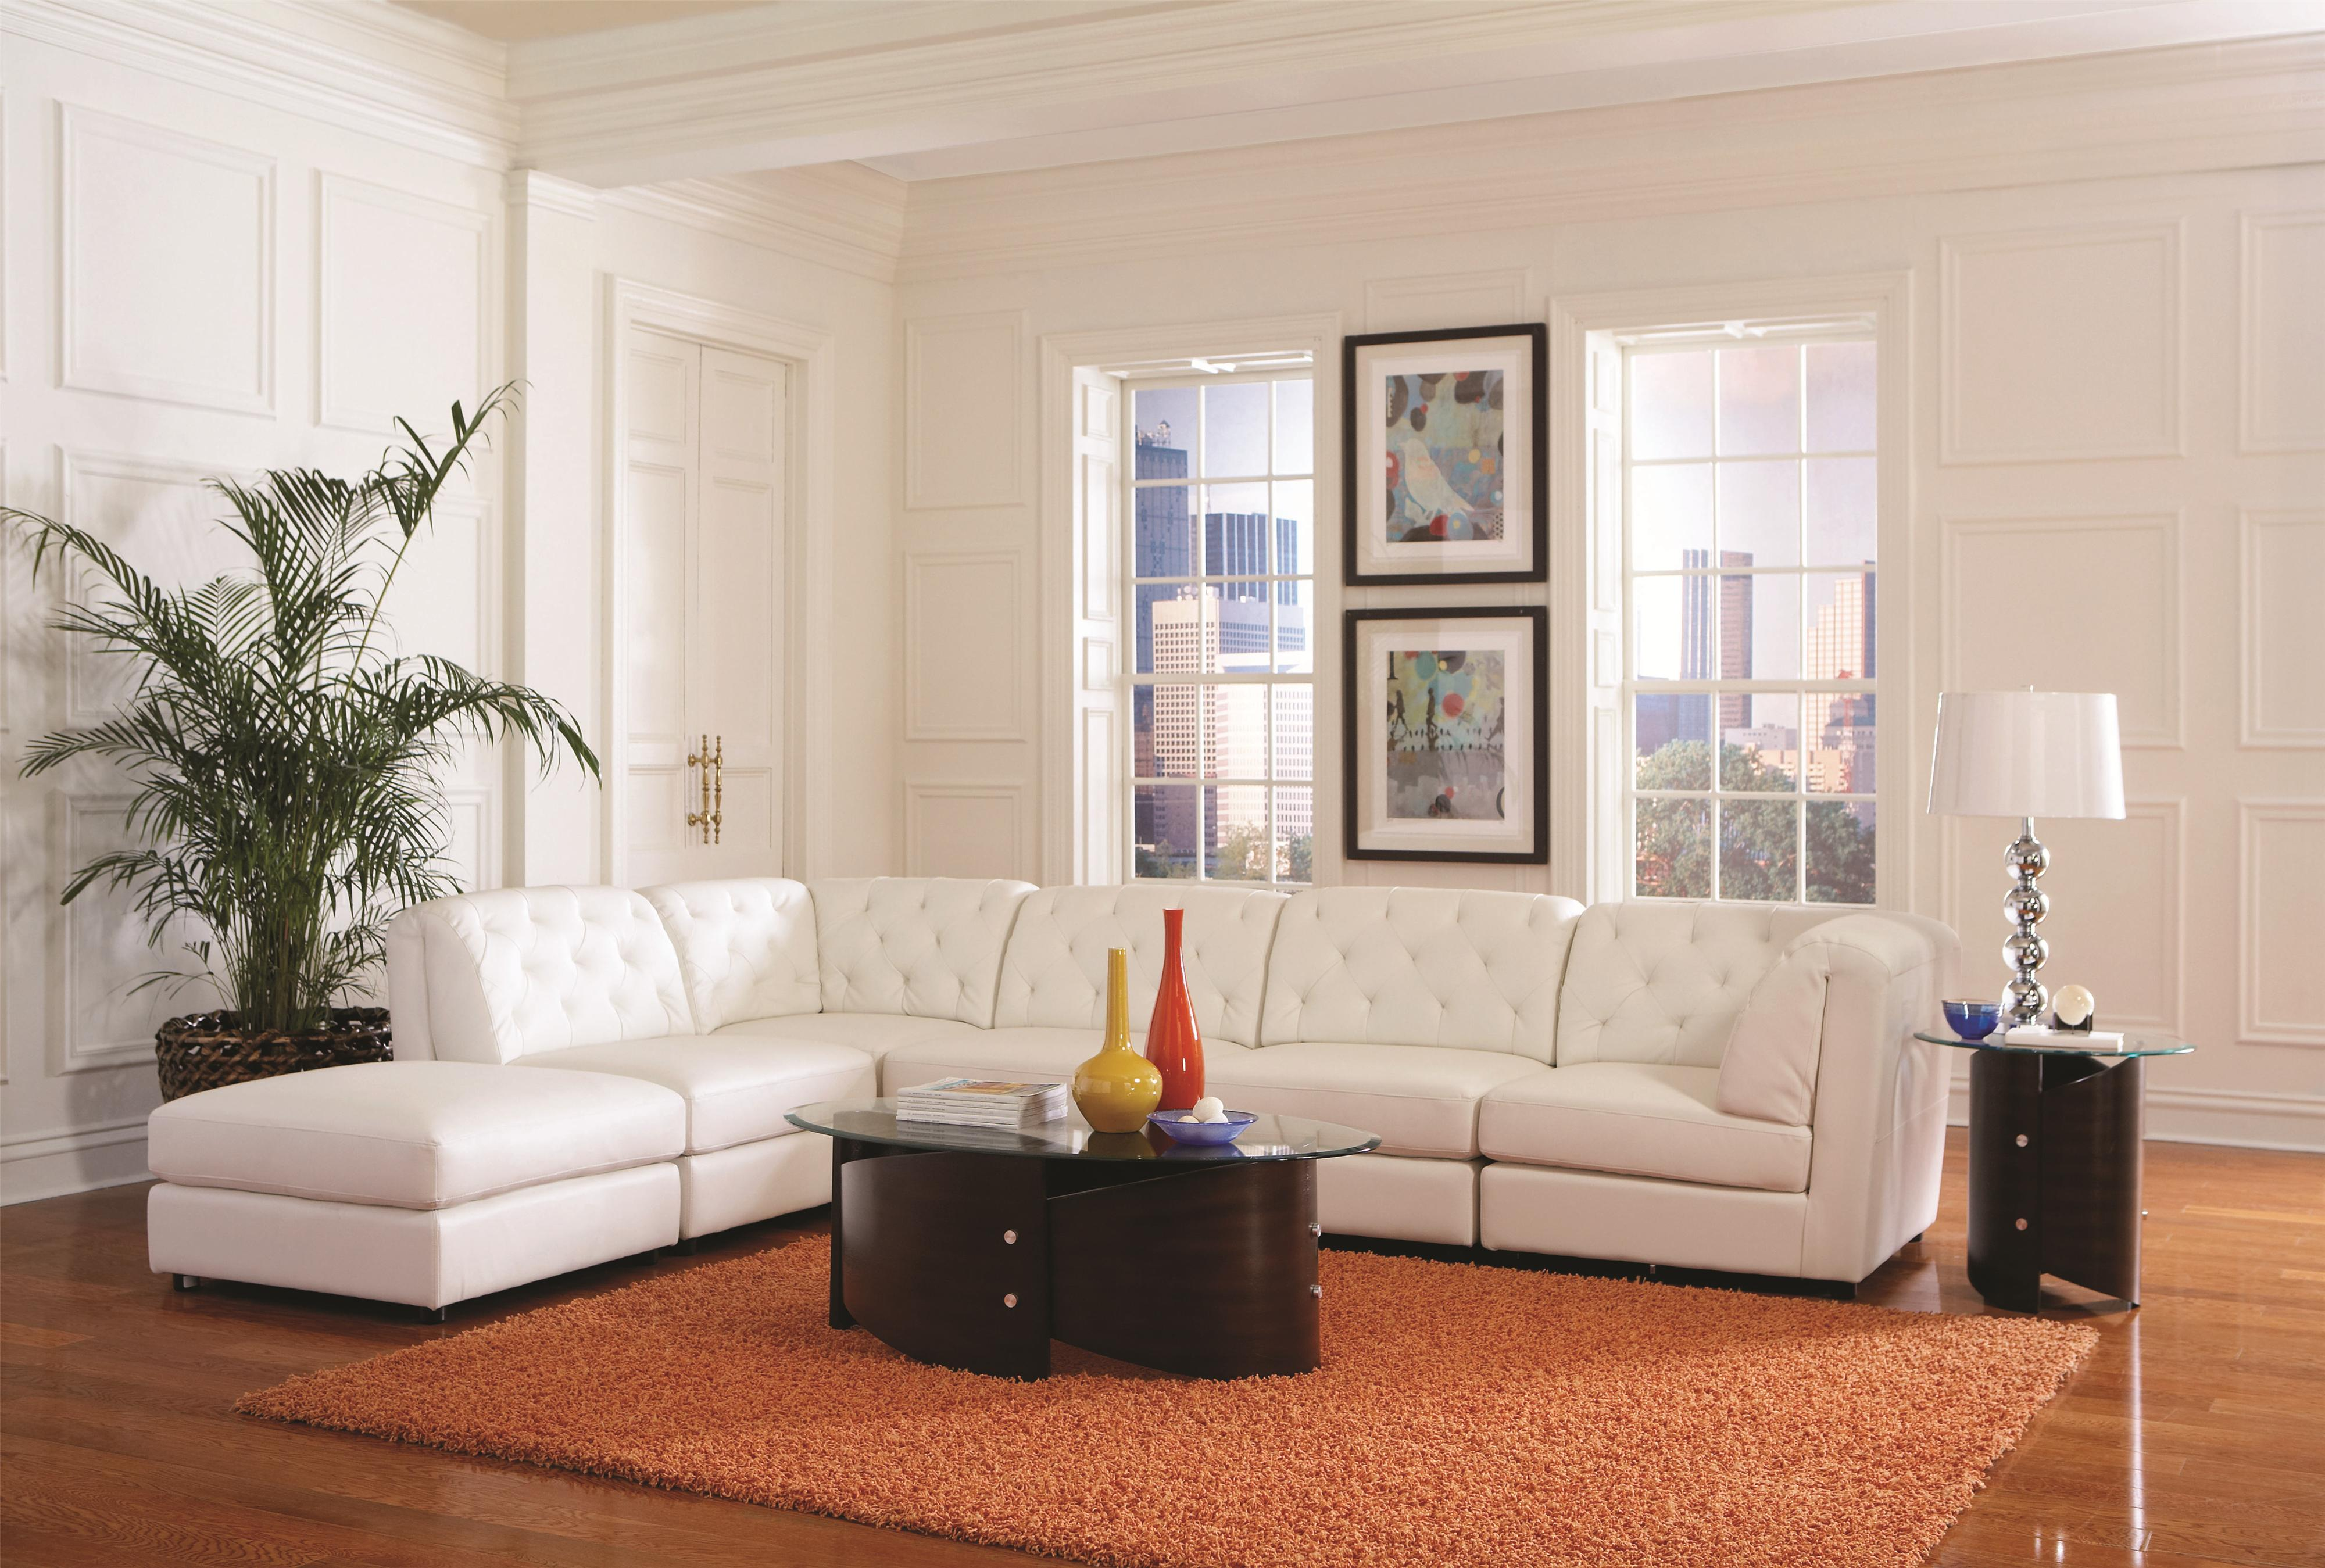 Coaster Quinn Transitional Modular Sectional Sofa - Coaster Fine Furniture : coaster sectional sofa - Sectionals, Sofas & Couches